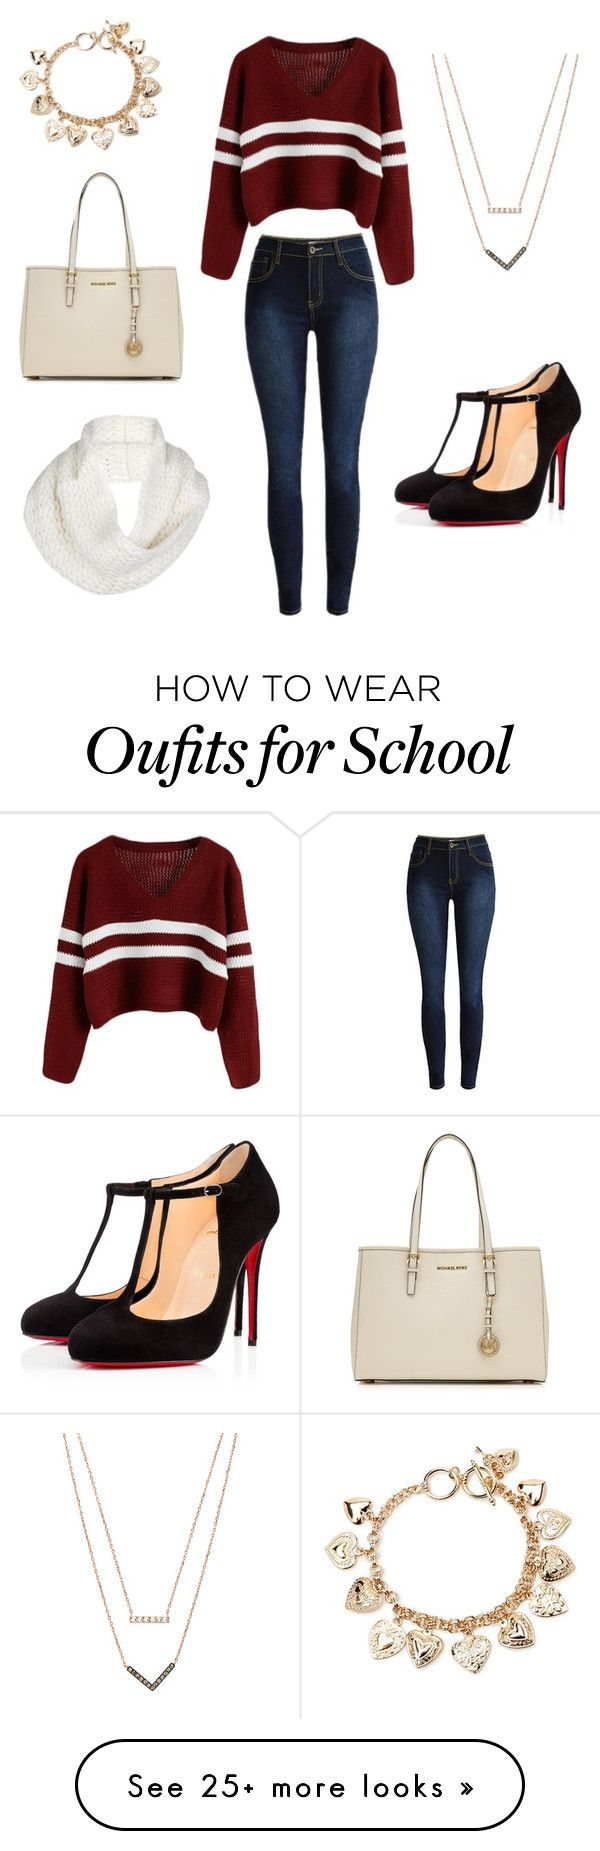 High School by annadva on Polyvore featuring Christian Louboutin, Michael Kors, Forever 21, UGG Australia, MICHAEL Michael Kors, womens clothing, womens fashion, women, female and woman